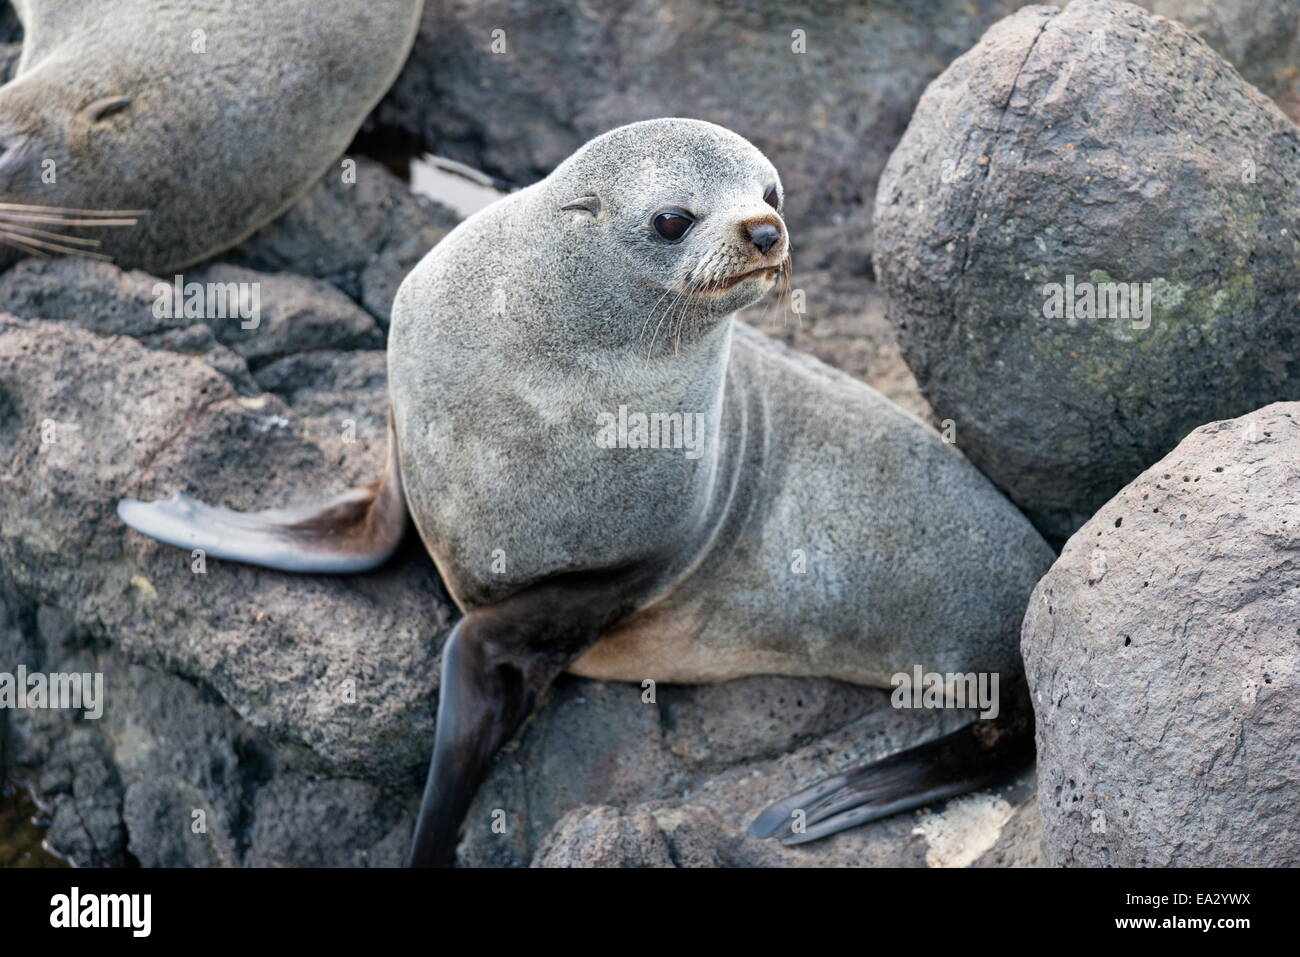 New Zealand Fur seal at Otago Peninsula, Dunedin, South Island, Otago, New Zealand, Pacific - Stock Image